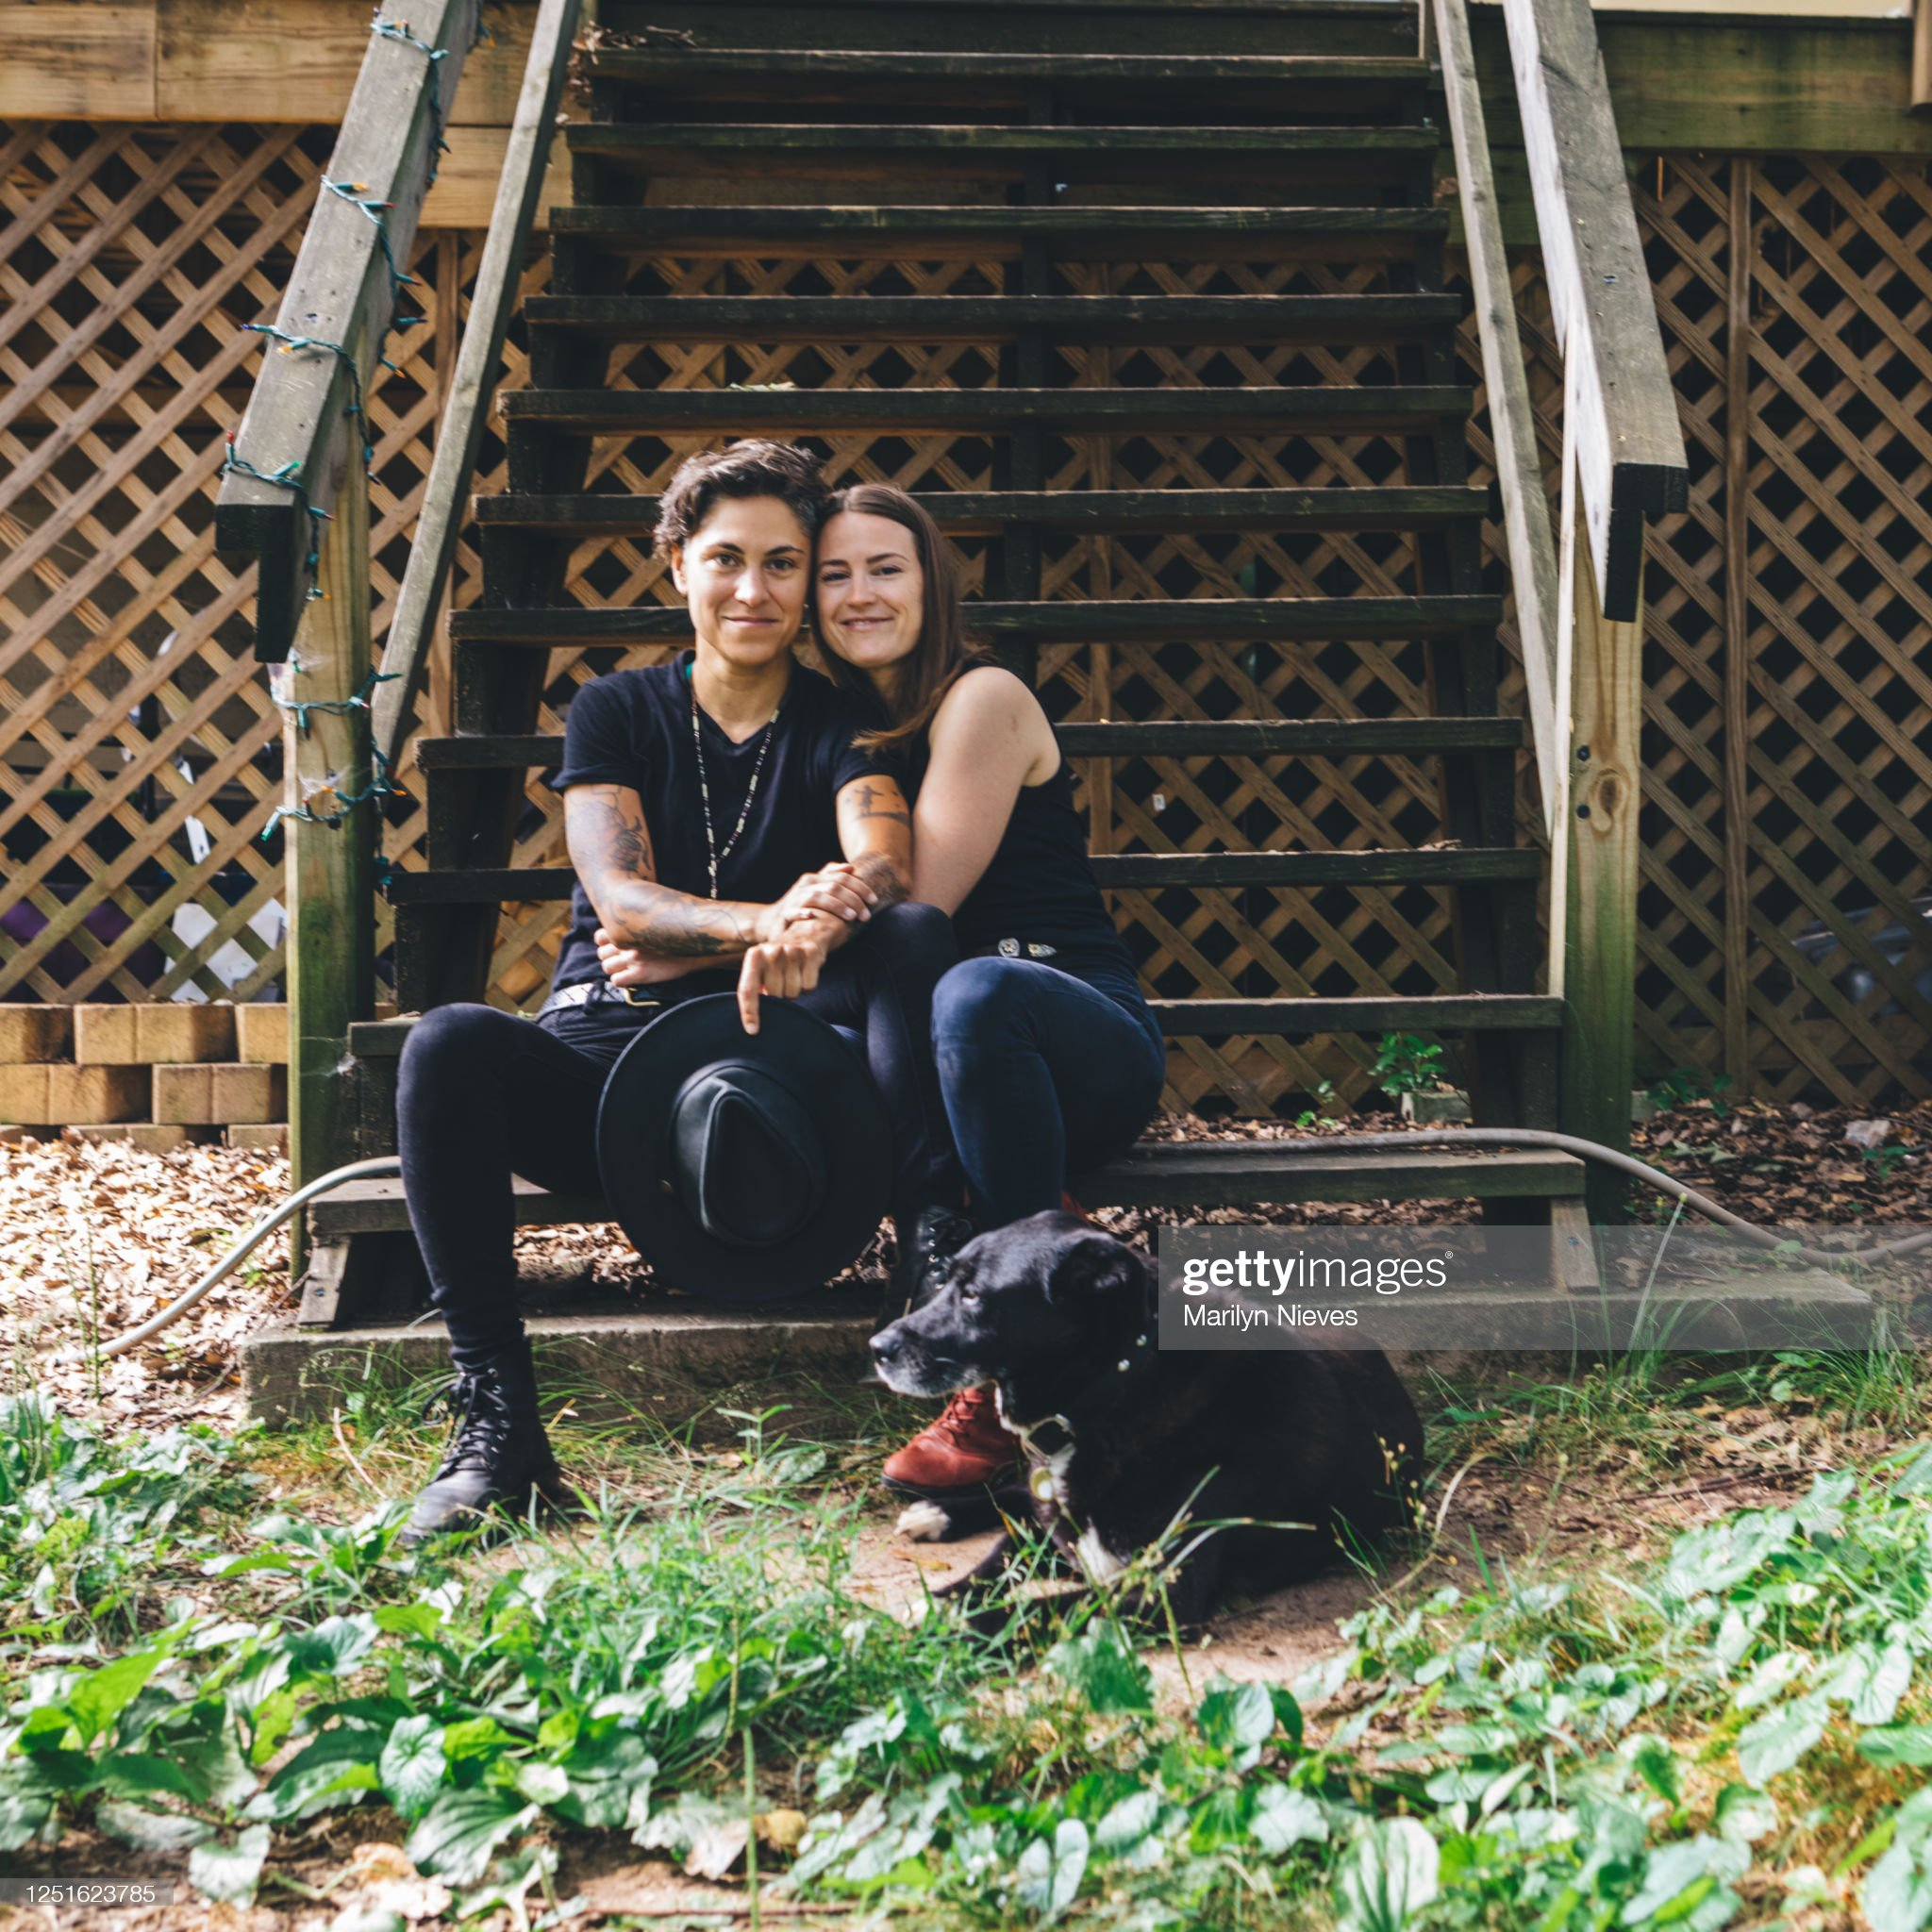 lesbian couple hugging and dog nearby : Stock Photo